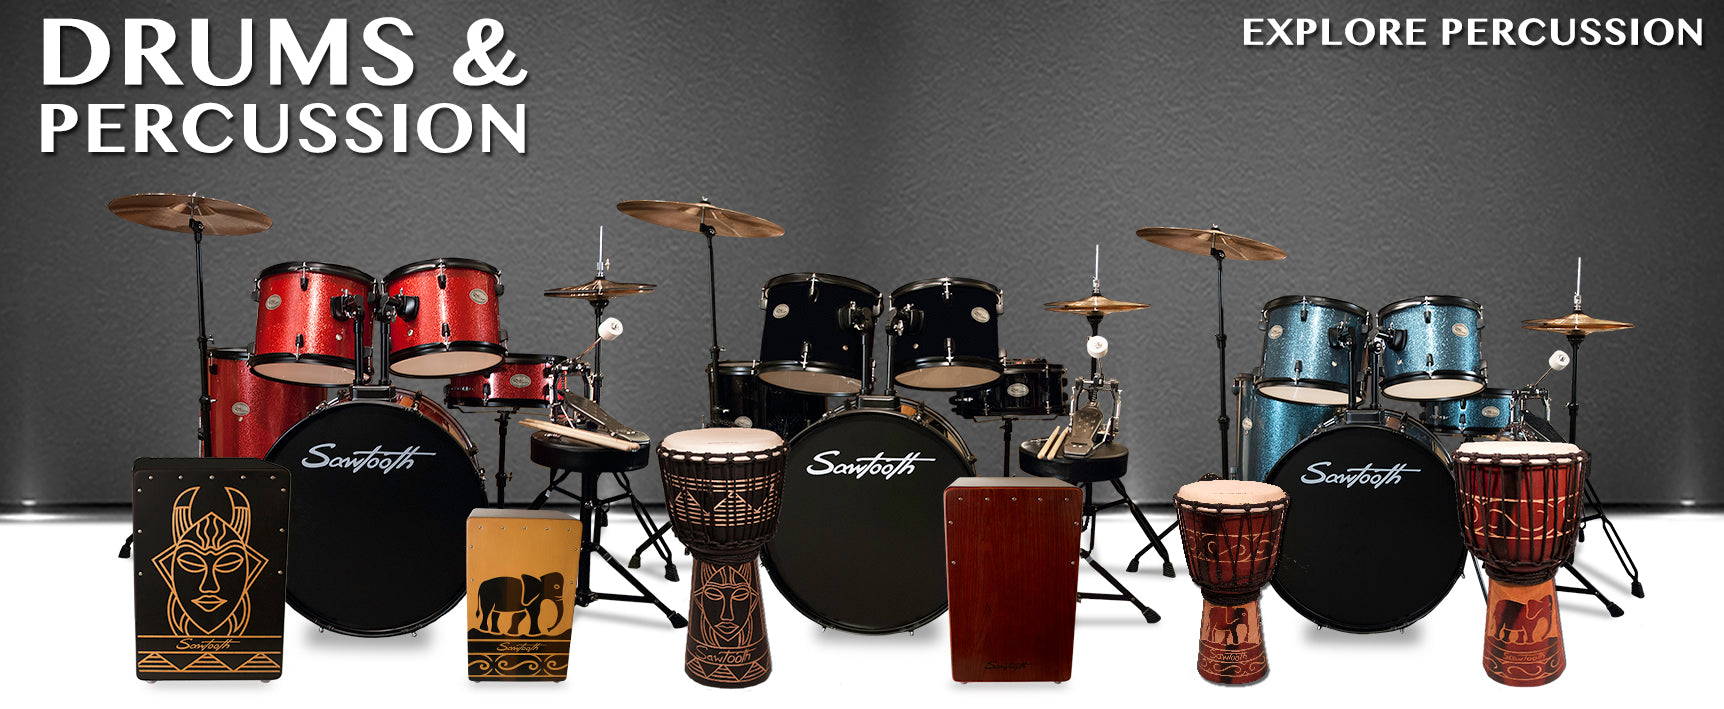 Sawtooth Percussion